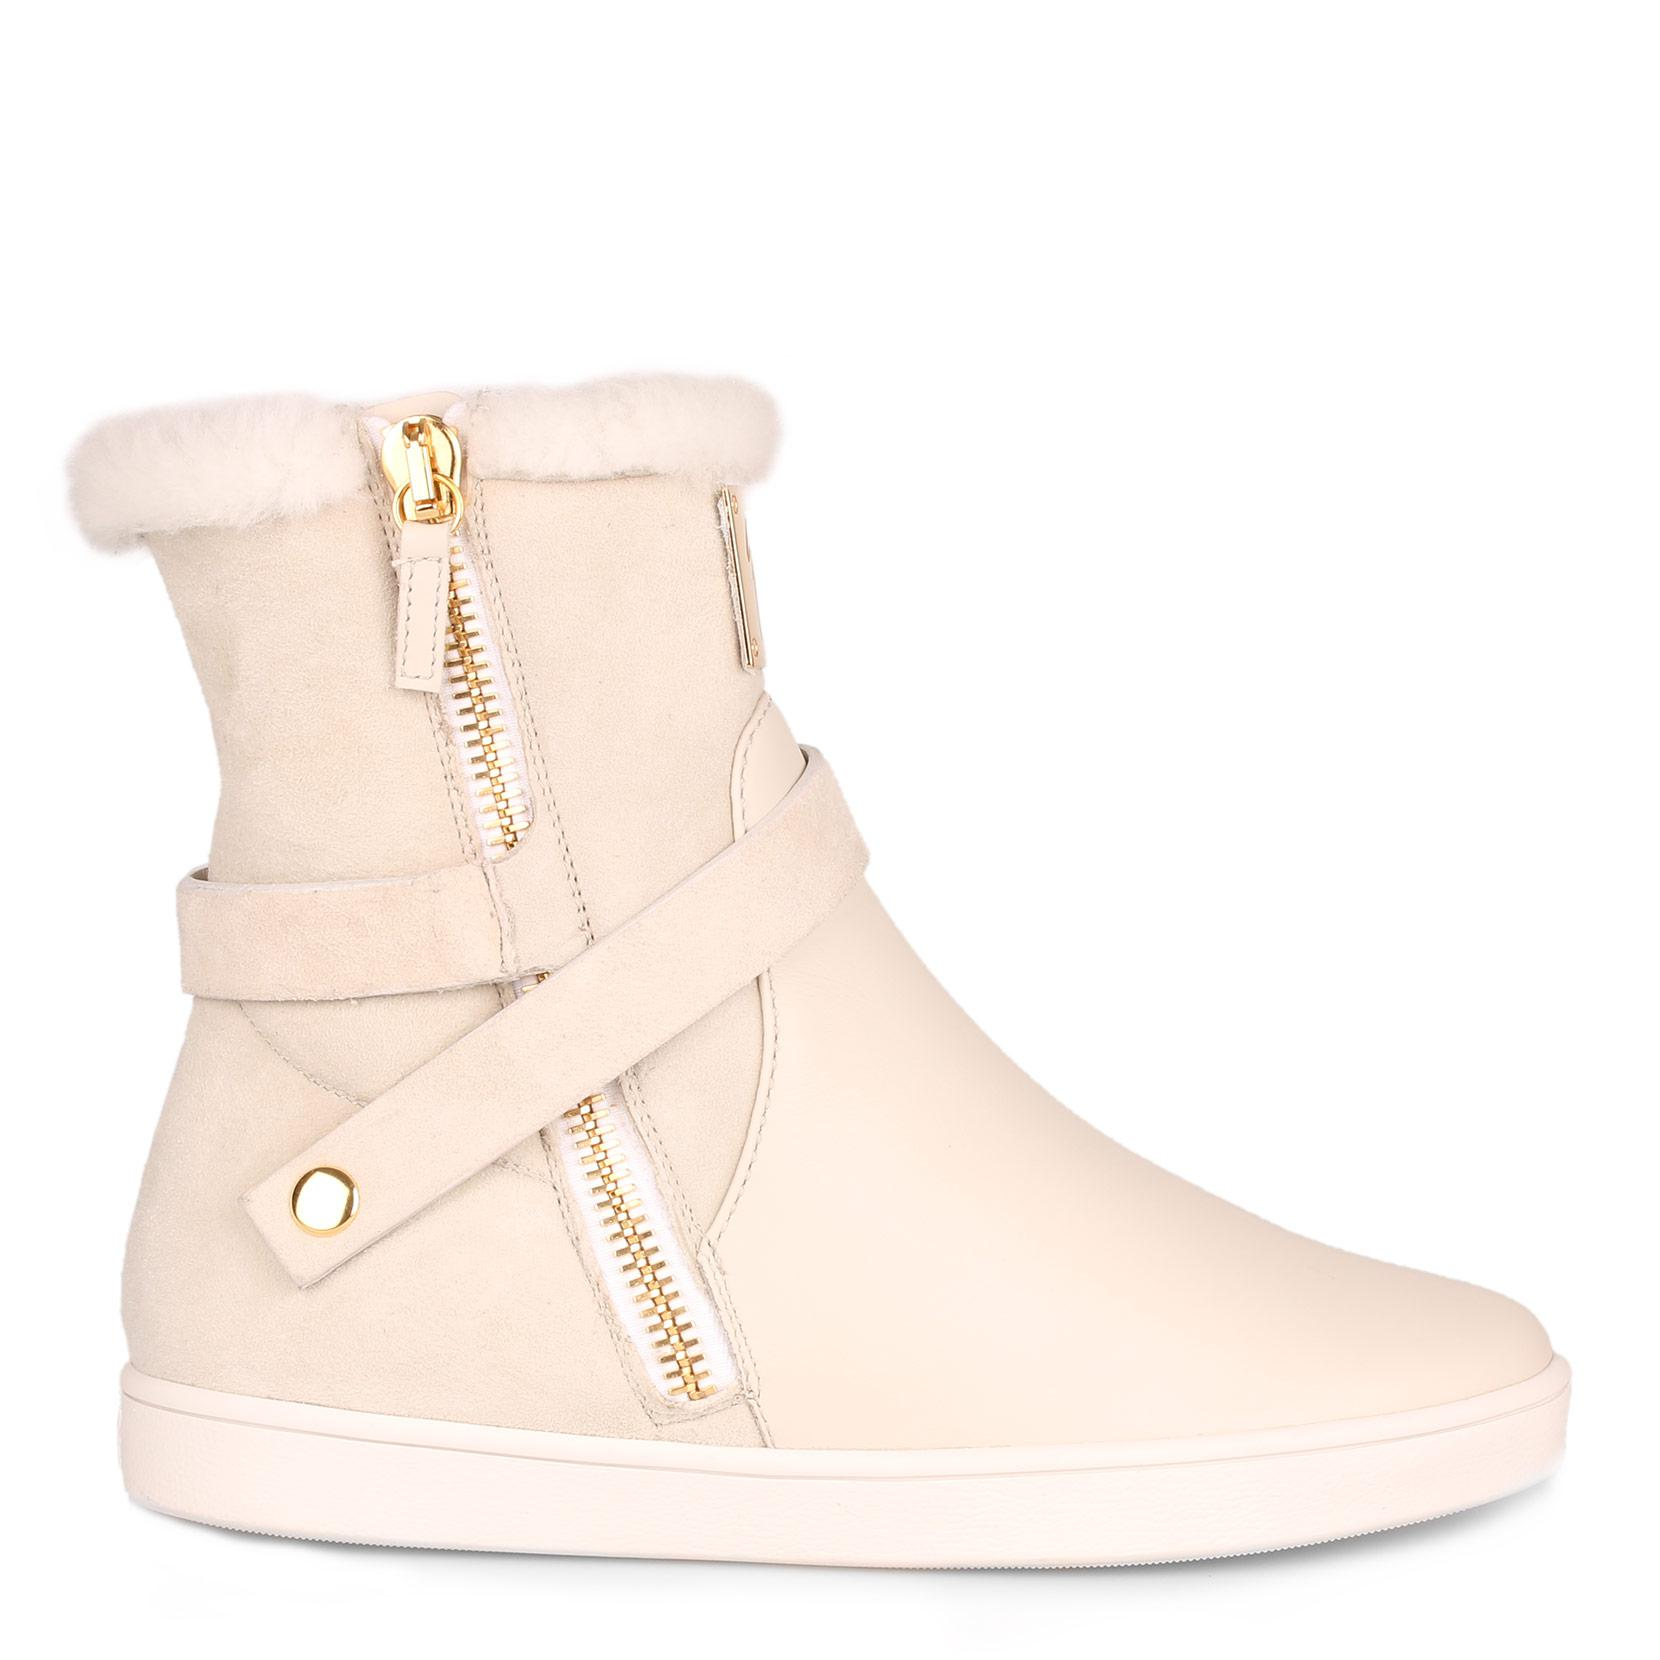 Off white shearling sneaker Giuseppe Zanotti Clearance Low Price Fee Shipping Classic Cheap Price Reliable Cheap Online FDTS4